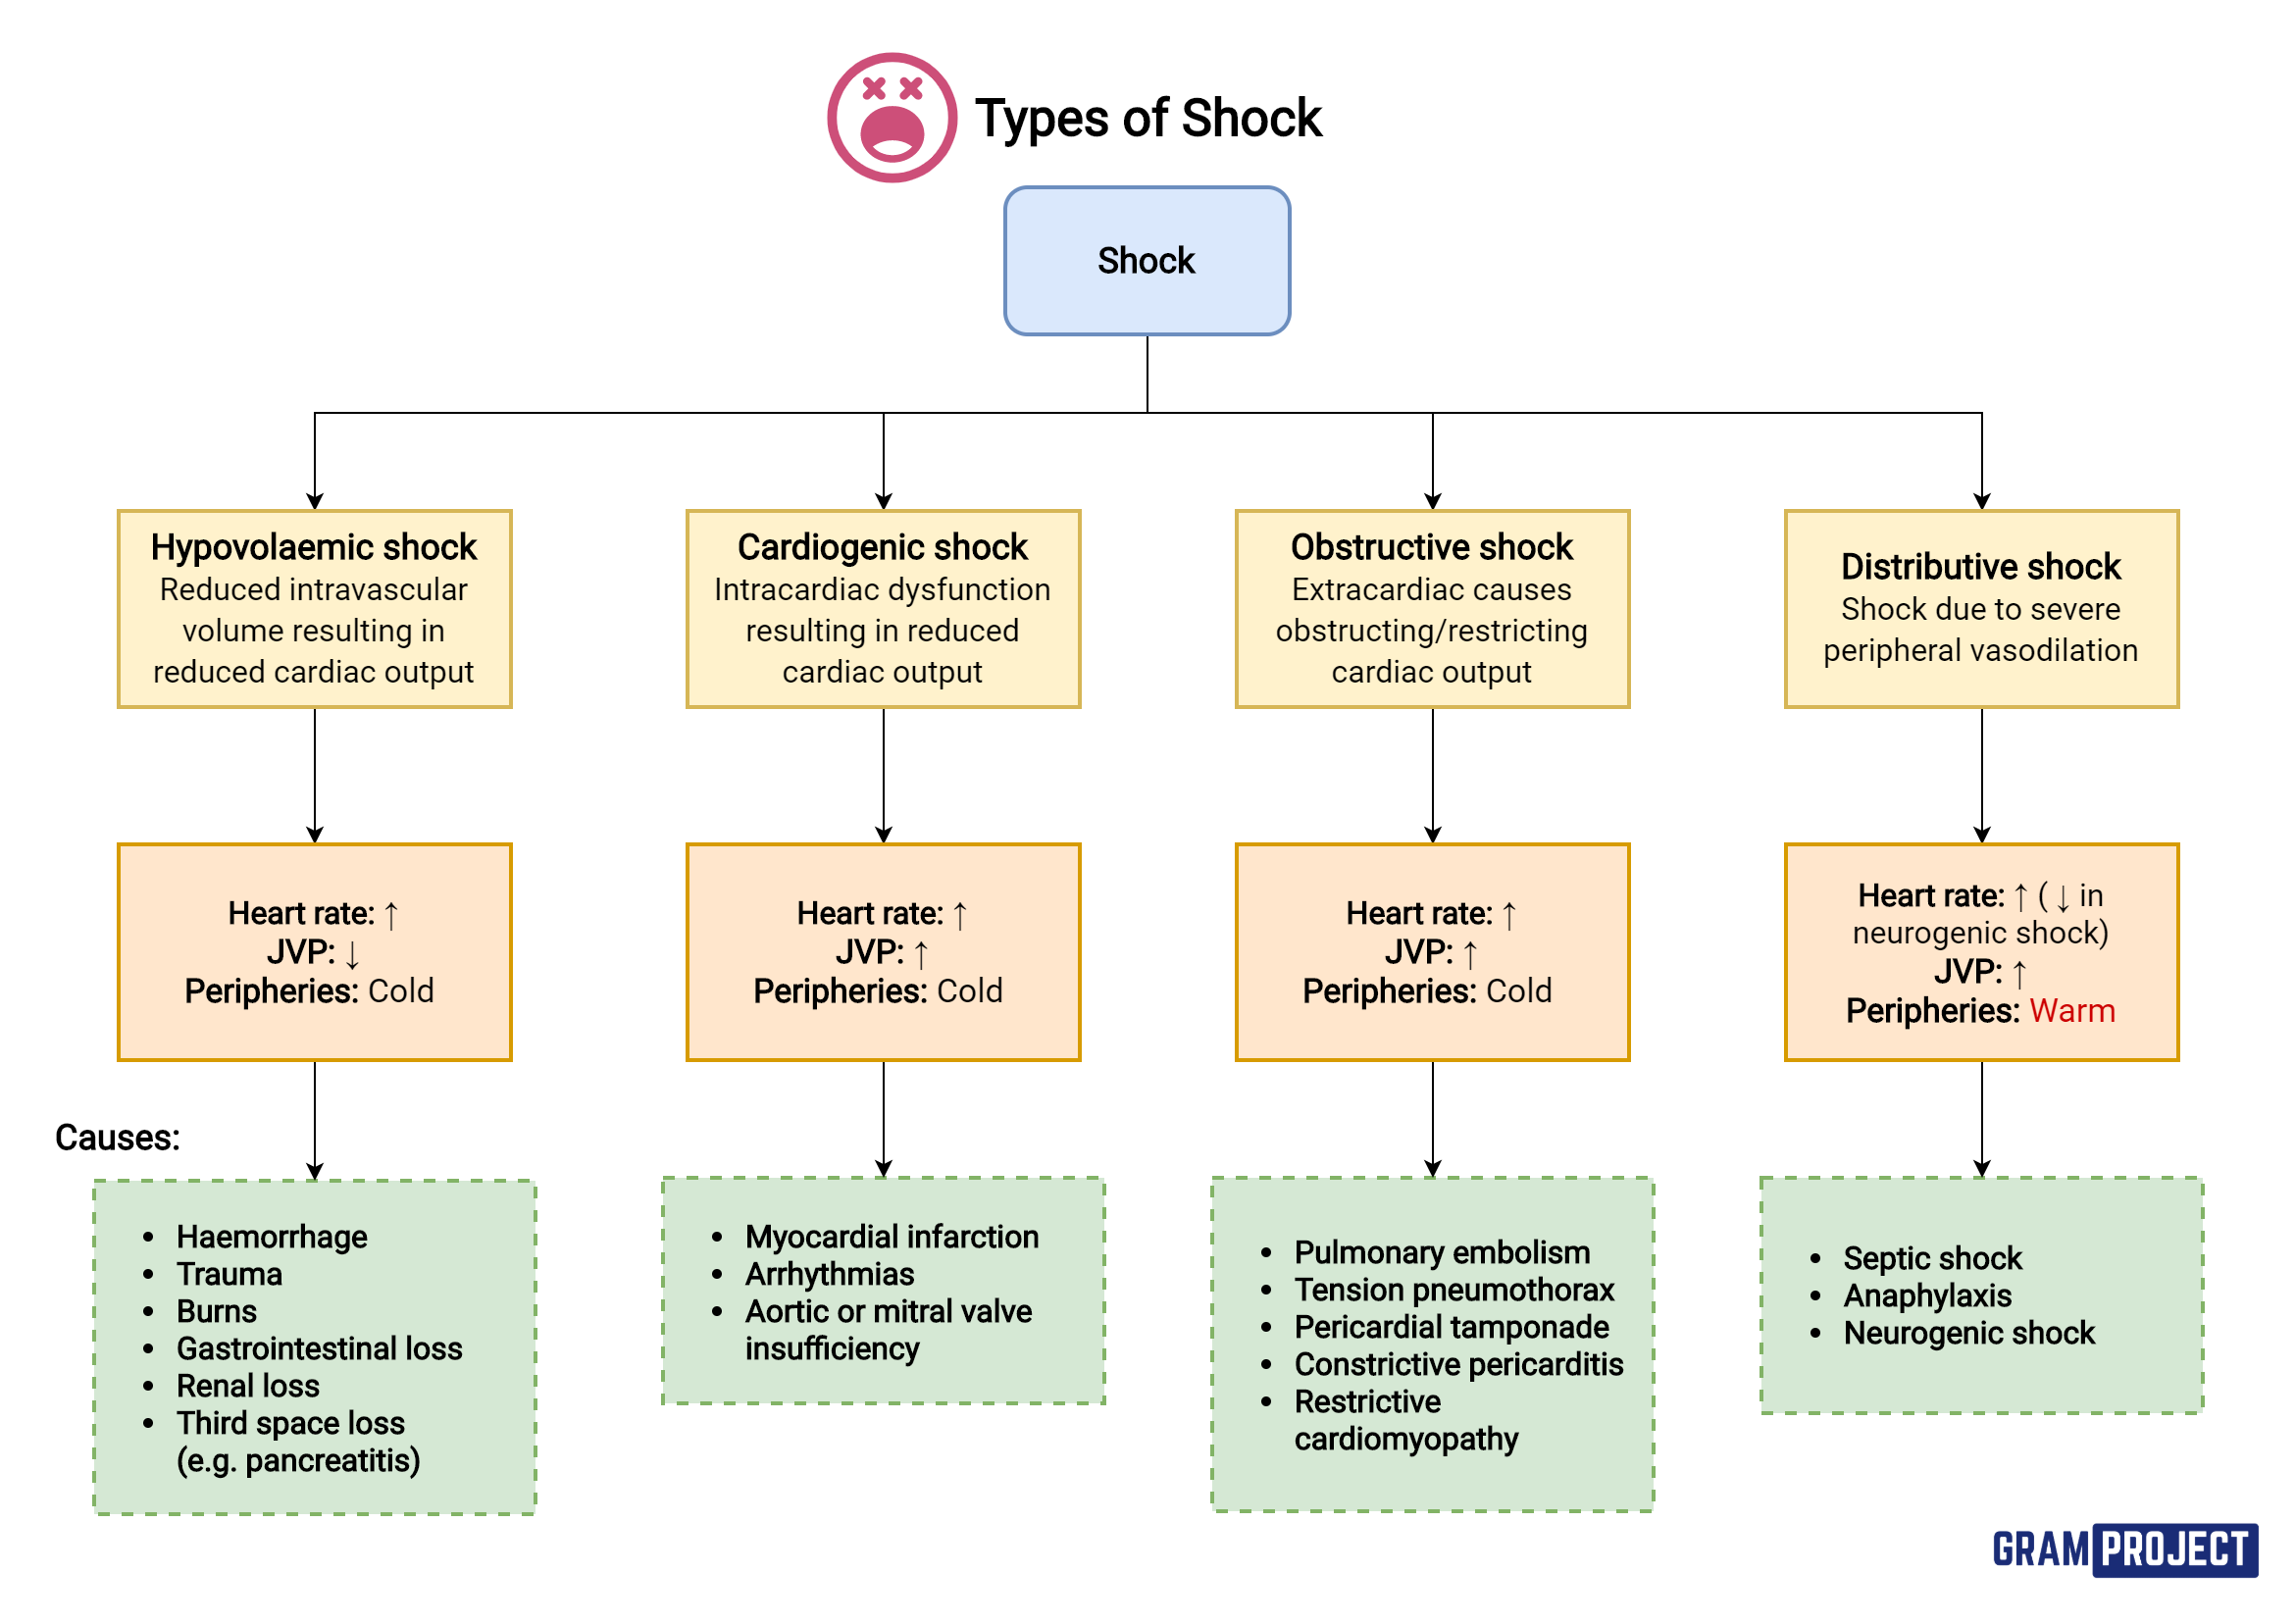 Types of shock and their respective clinical findings and causes.